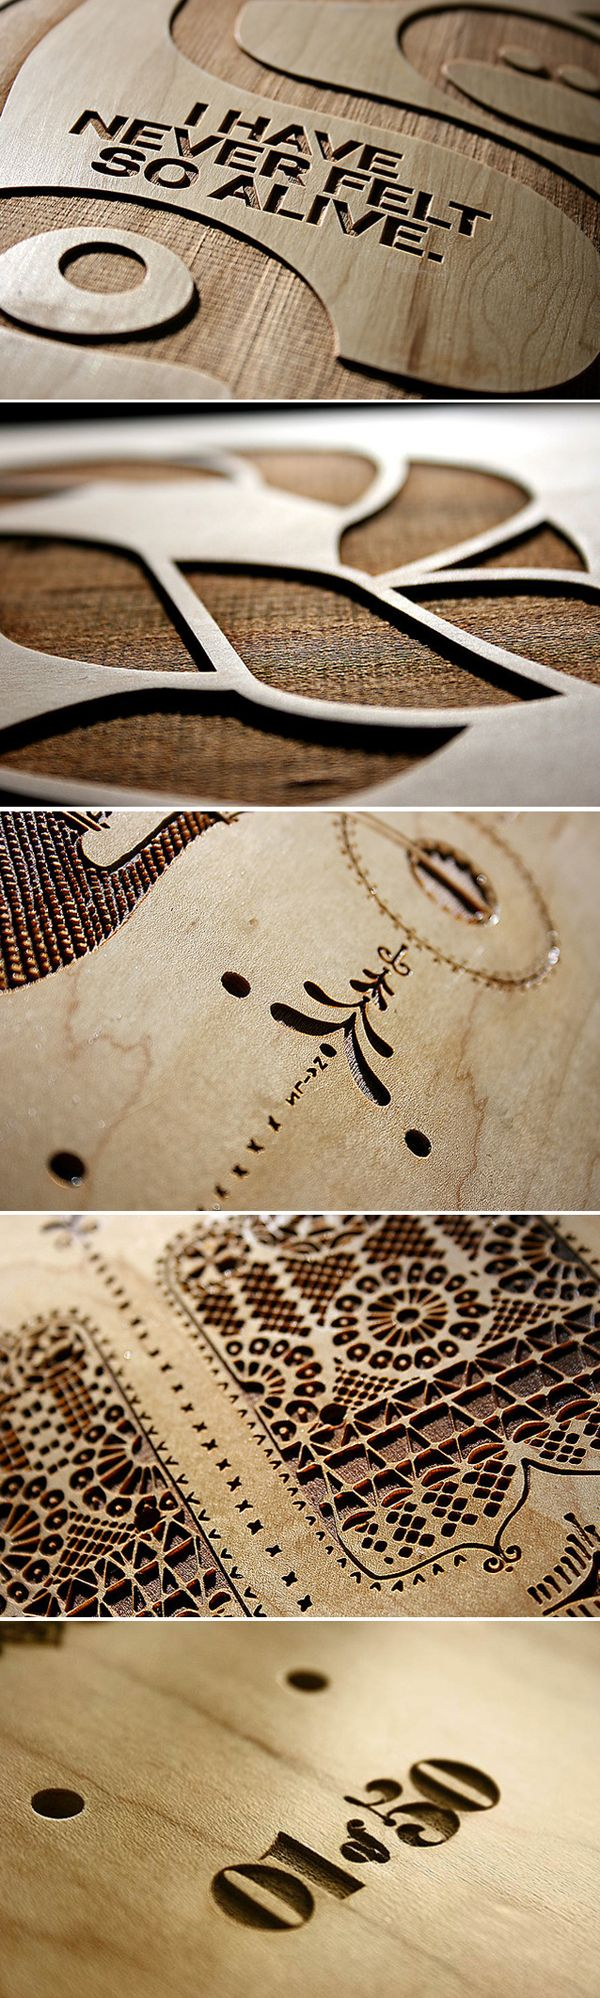 We love lasercutting in wood. Isn't this example just stunning? This one is not from us - stay tuned to see work from our print studio :)